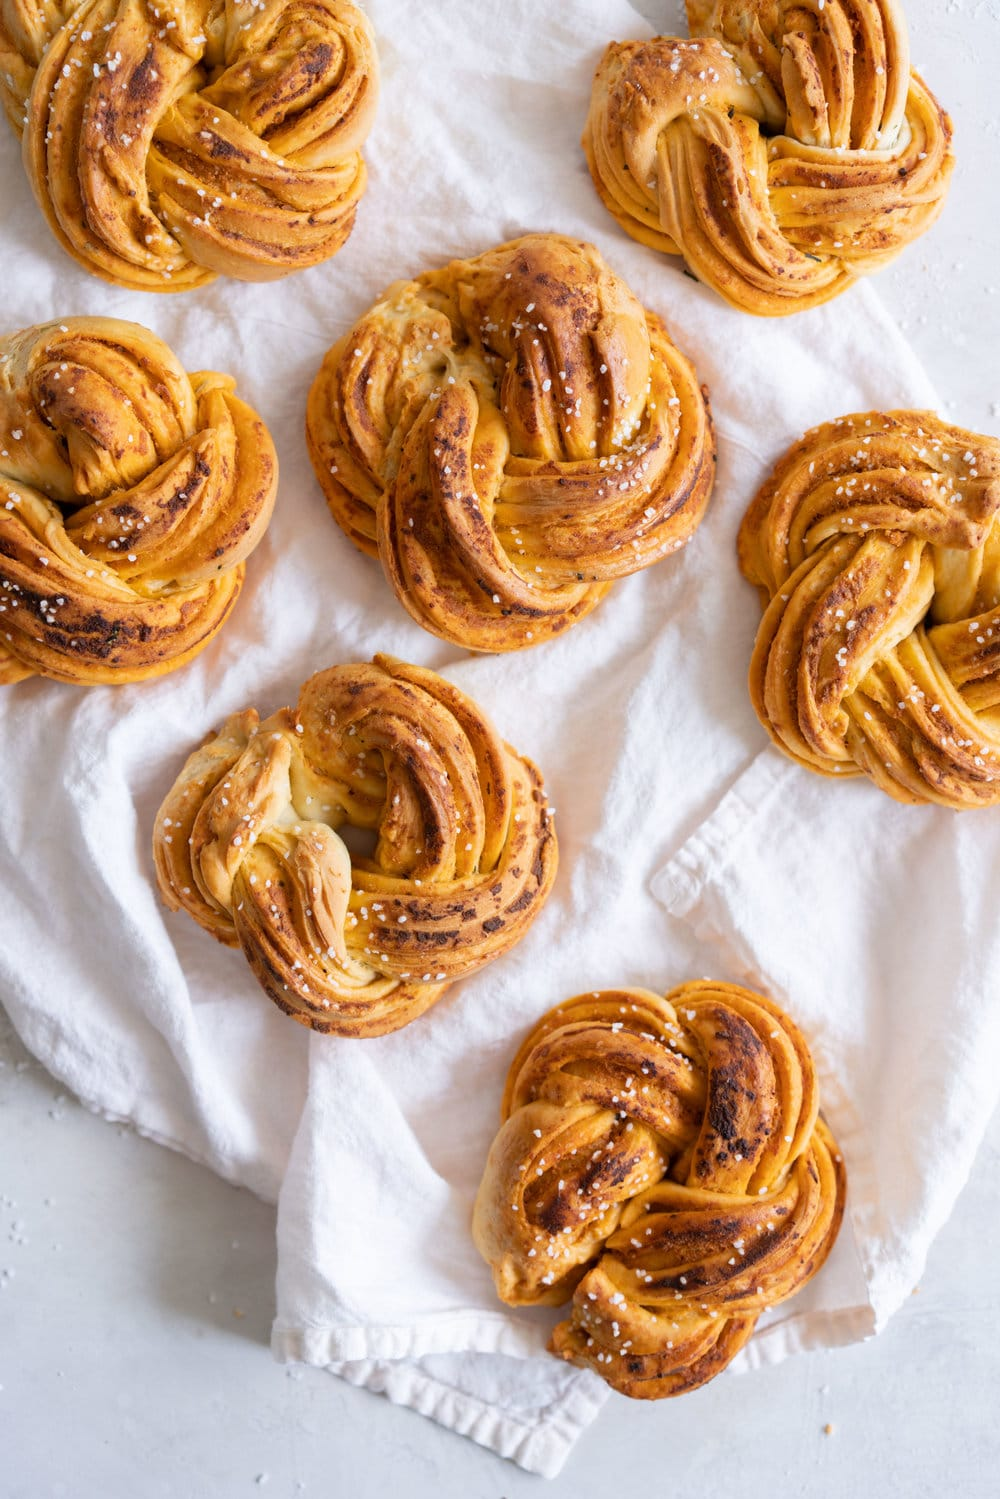 Fluffy Brioche knots filled with Roasted Garlic, Tomato and Ricotta Pesto. Rolled up and twisted into knots, and baked to golden, puffy perfection. Perfect on their own or as an addition to a lunch or alongside a bowl of soup. #brioche #briocheknot #pestobrioche